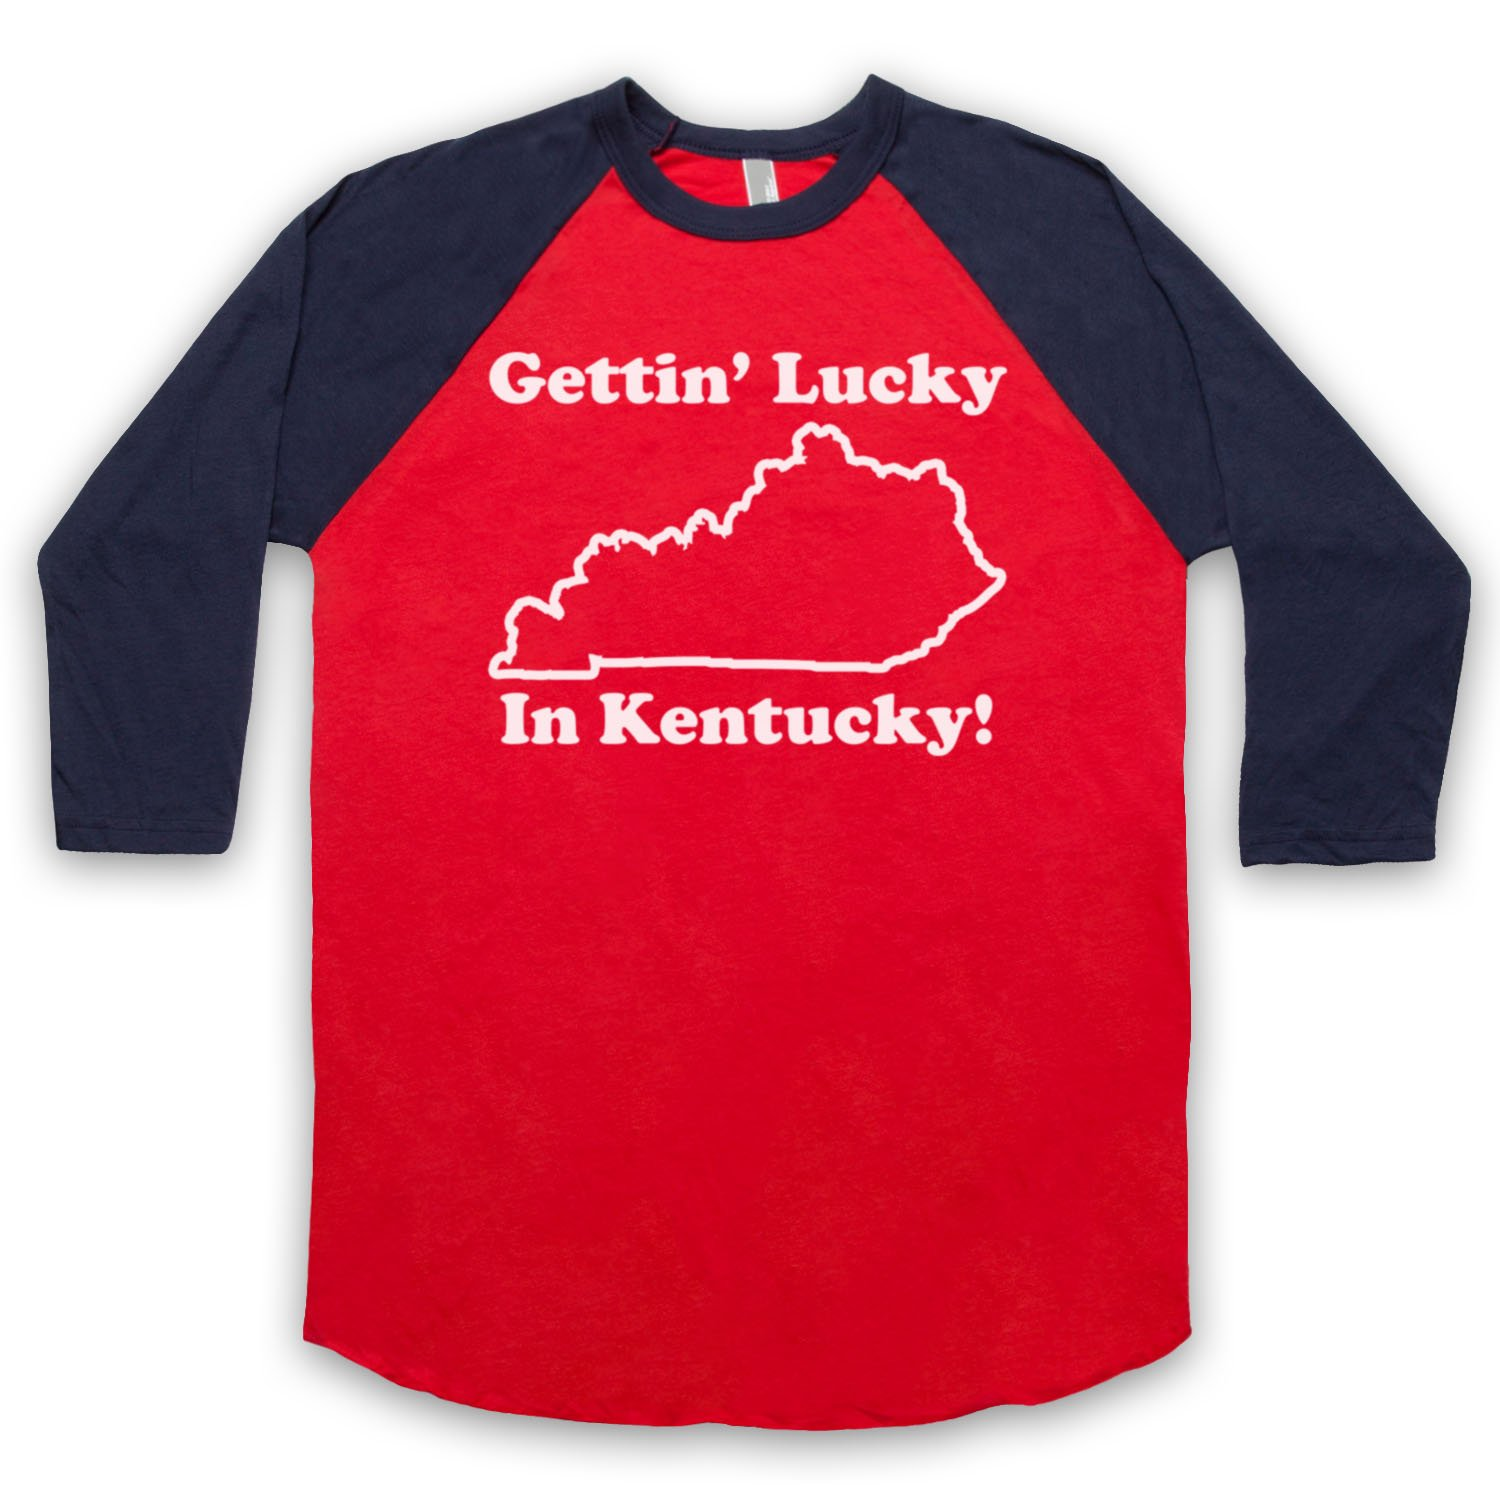 Inspired by School Of Rock Gettin' Lucky In Kentucky Unofficial 3/4 Sleeve Retro Baseball Tee